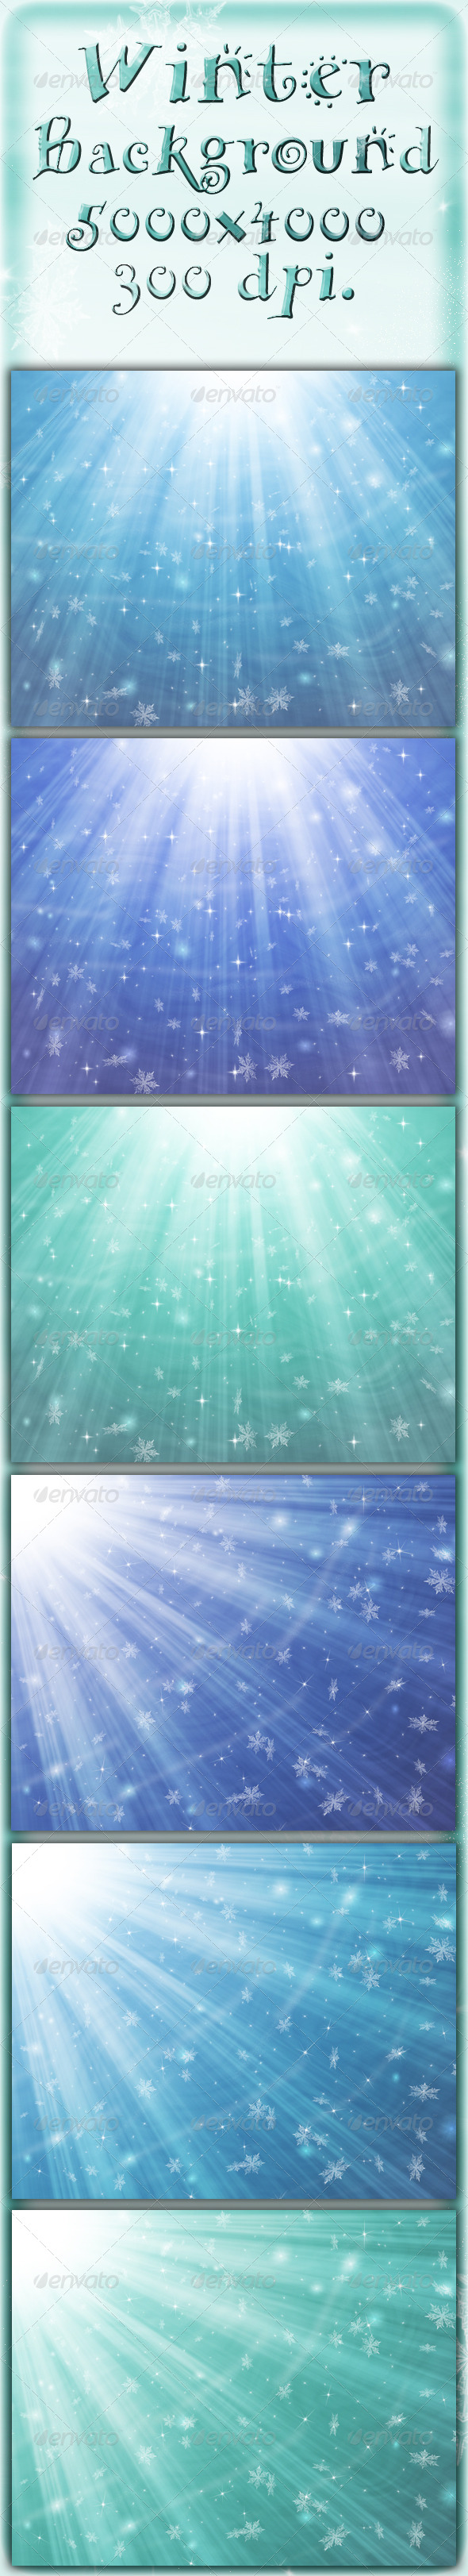 GraphicRiver Winter Backgrounds 5988694